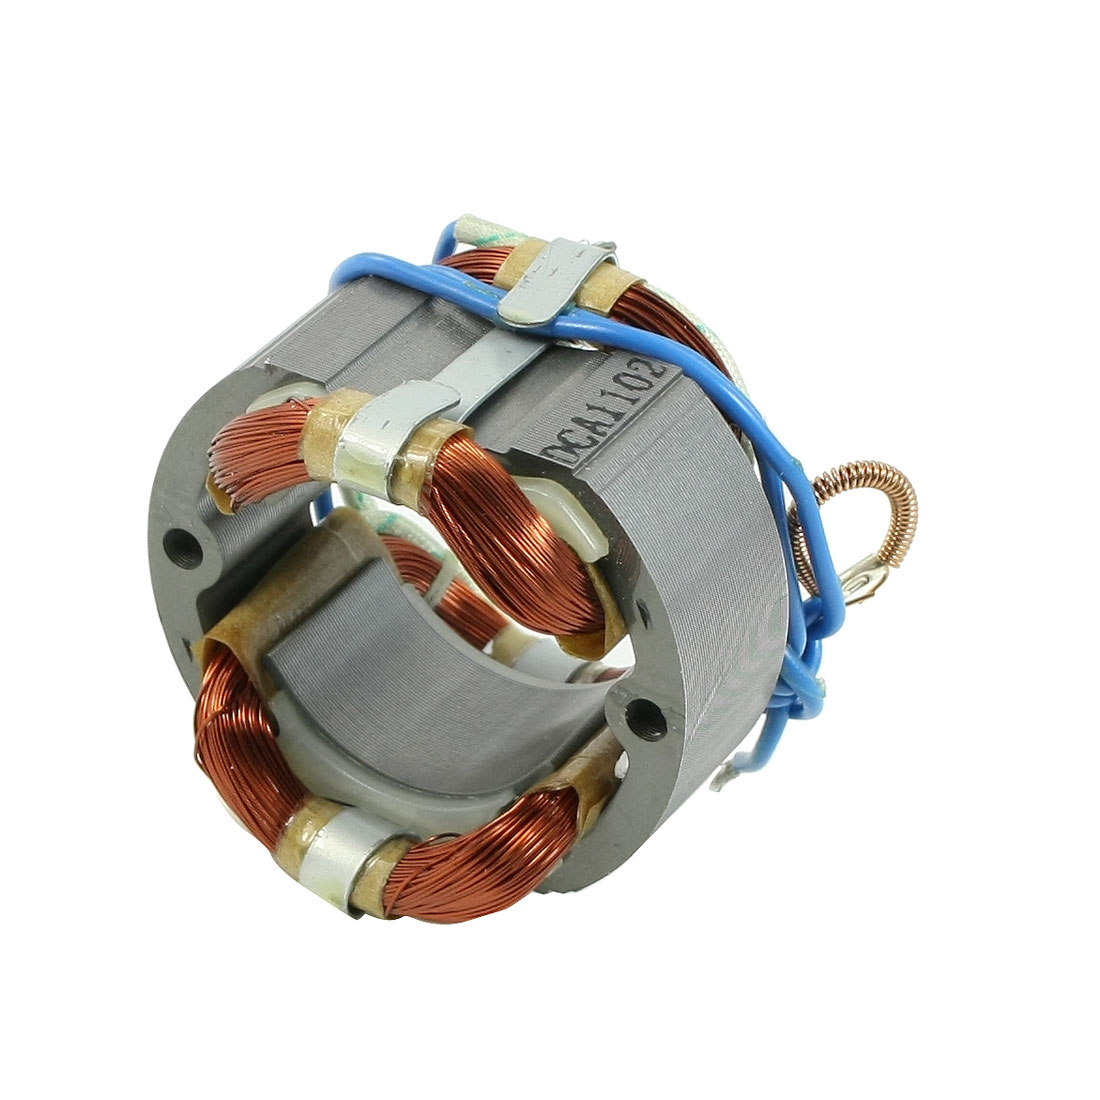 AC 220V Copper 42mm Rotor Core Motor Stator for Makita 9045 Electric Hammer